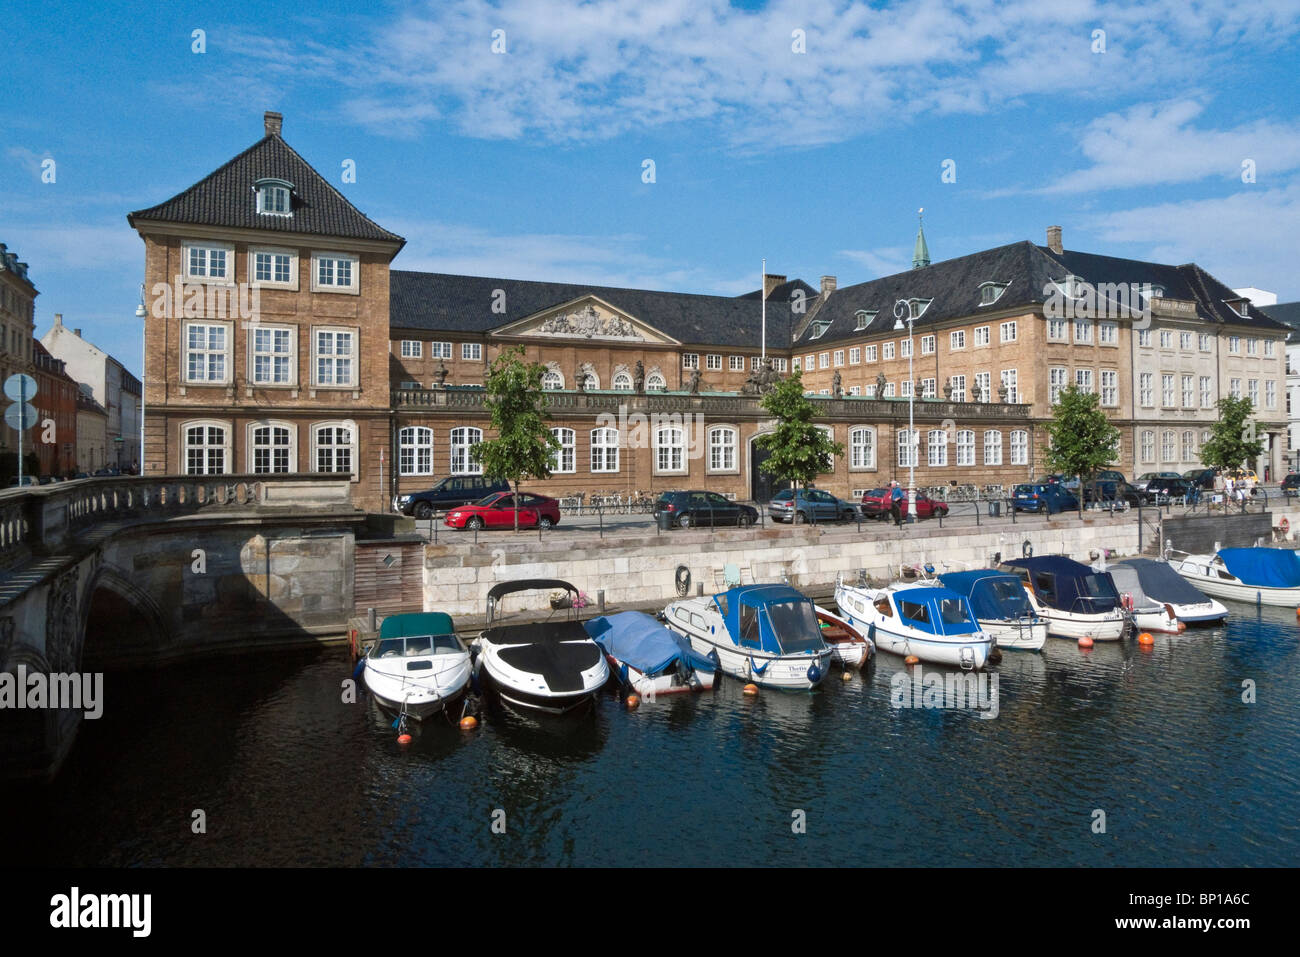 The Danish Nationalmuseet (National Museum) in Copenhagen by the Frederiksholm Canal - Stock Image